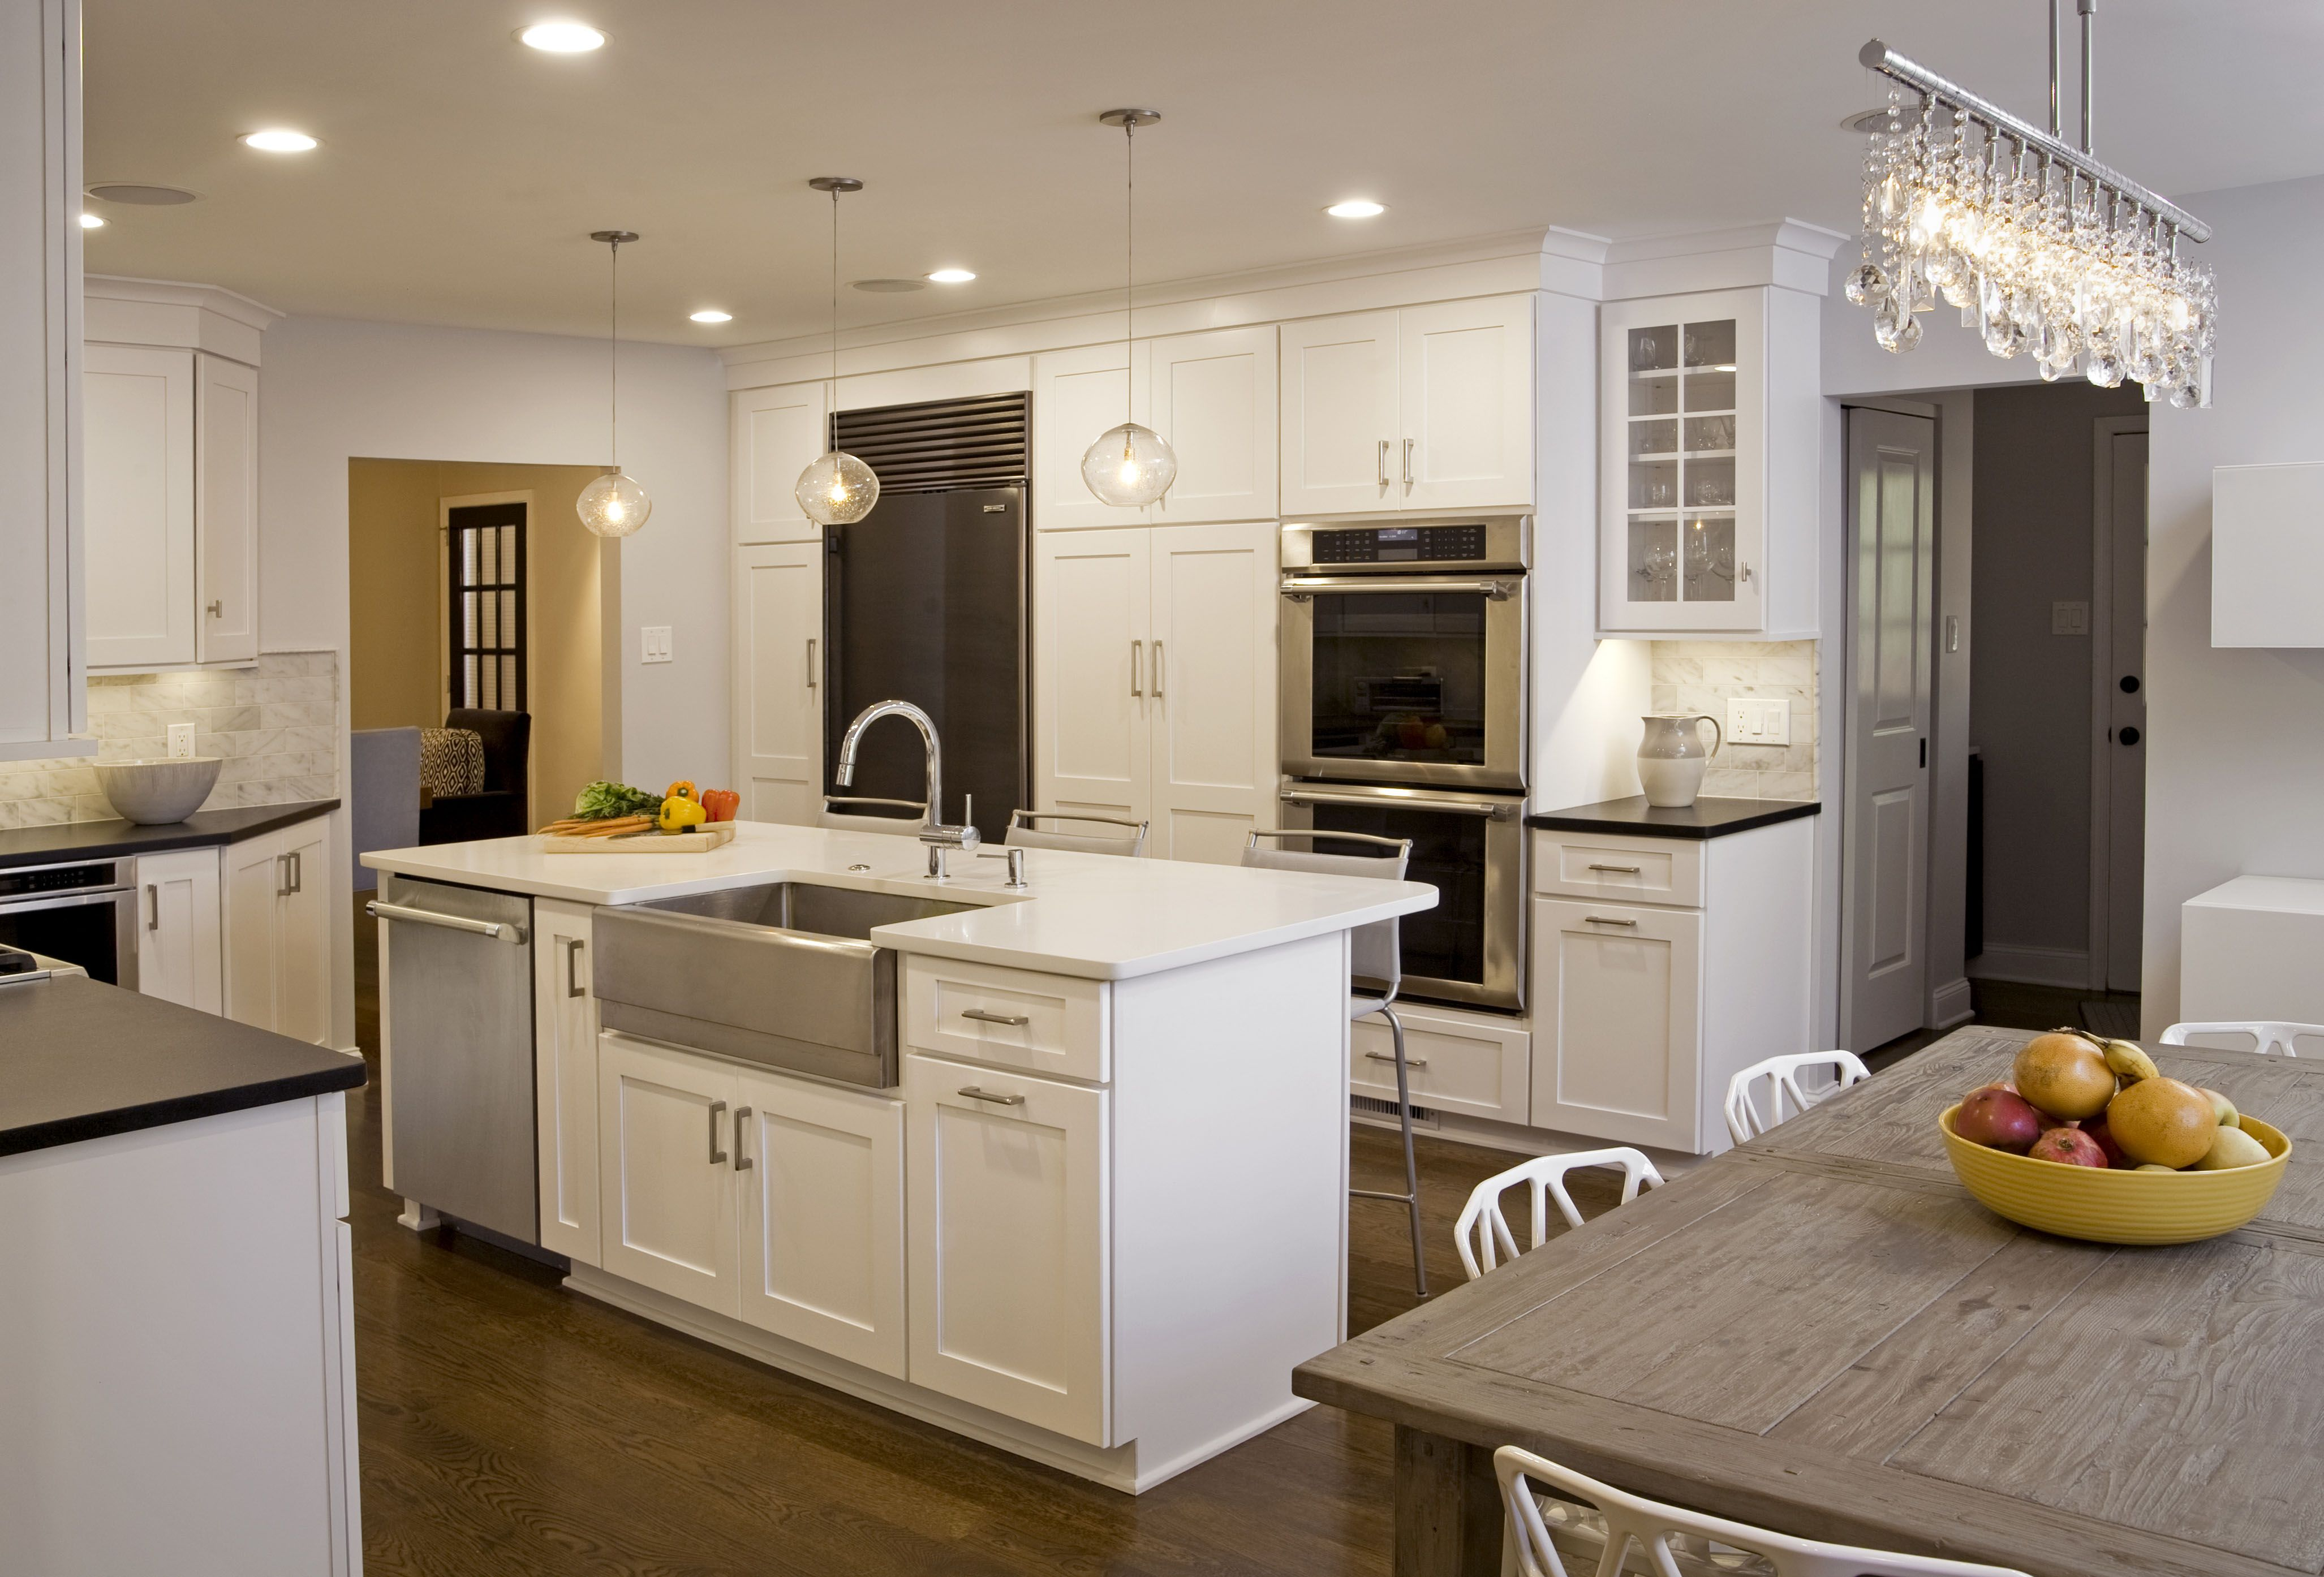 This beautiful transitional kitchen in Lafayette Hill PA features